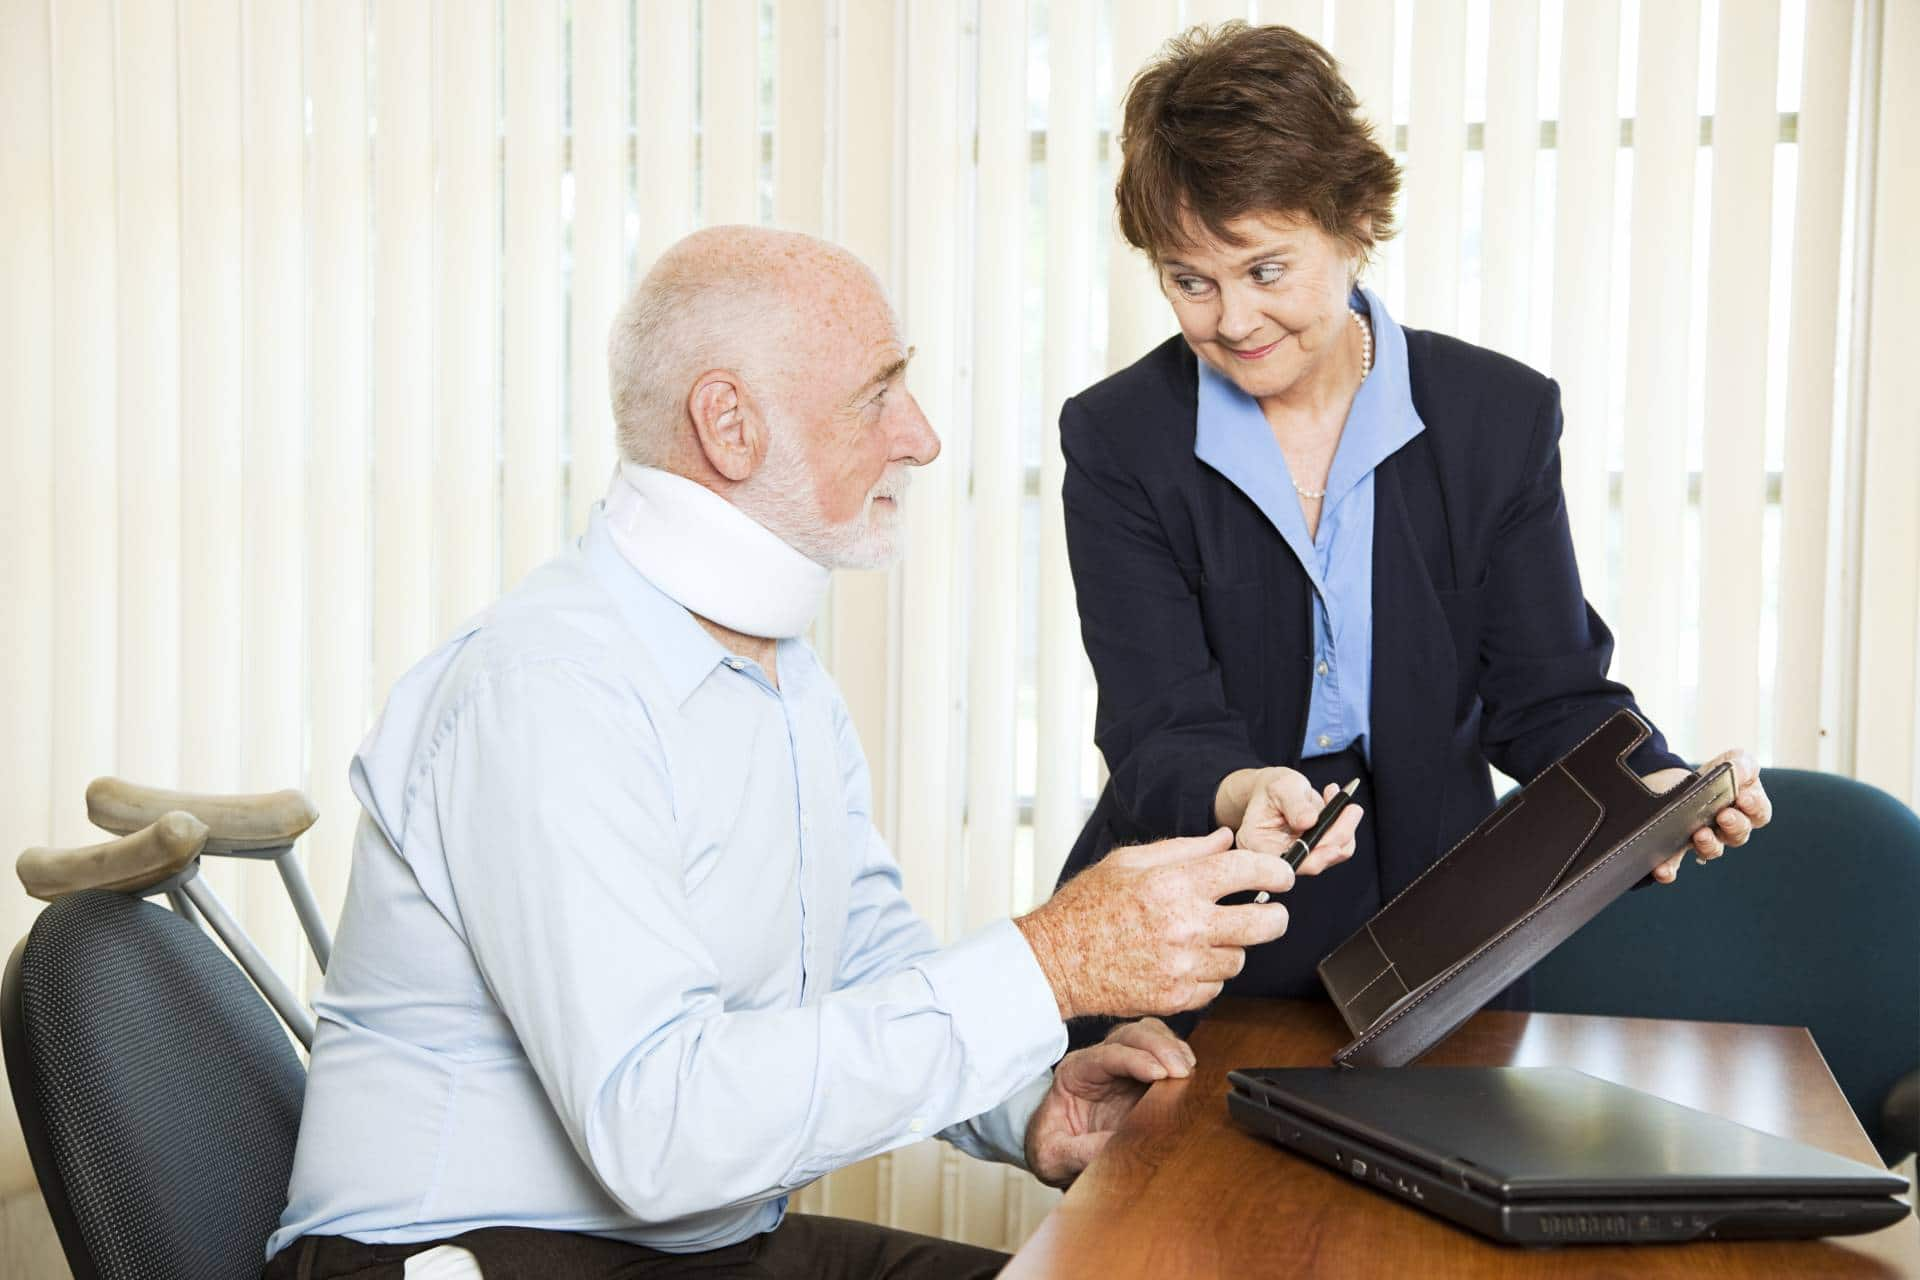 Schedule a free consultation with our personal injury lawyers at the Angell Law Firm in Palmetto, Ga